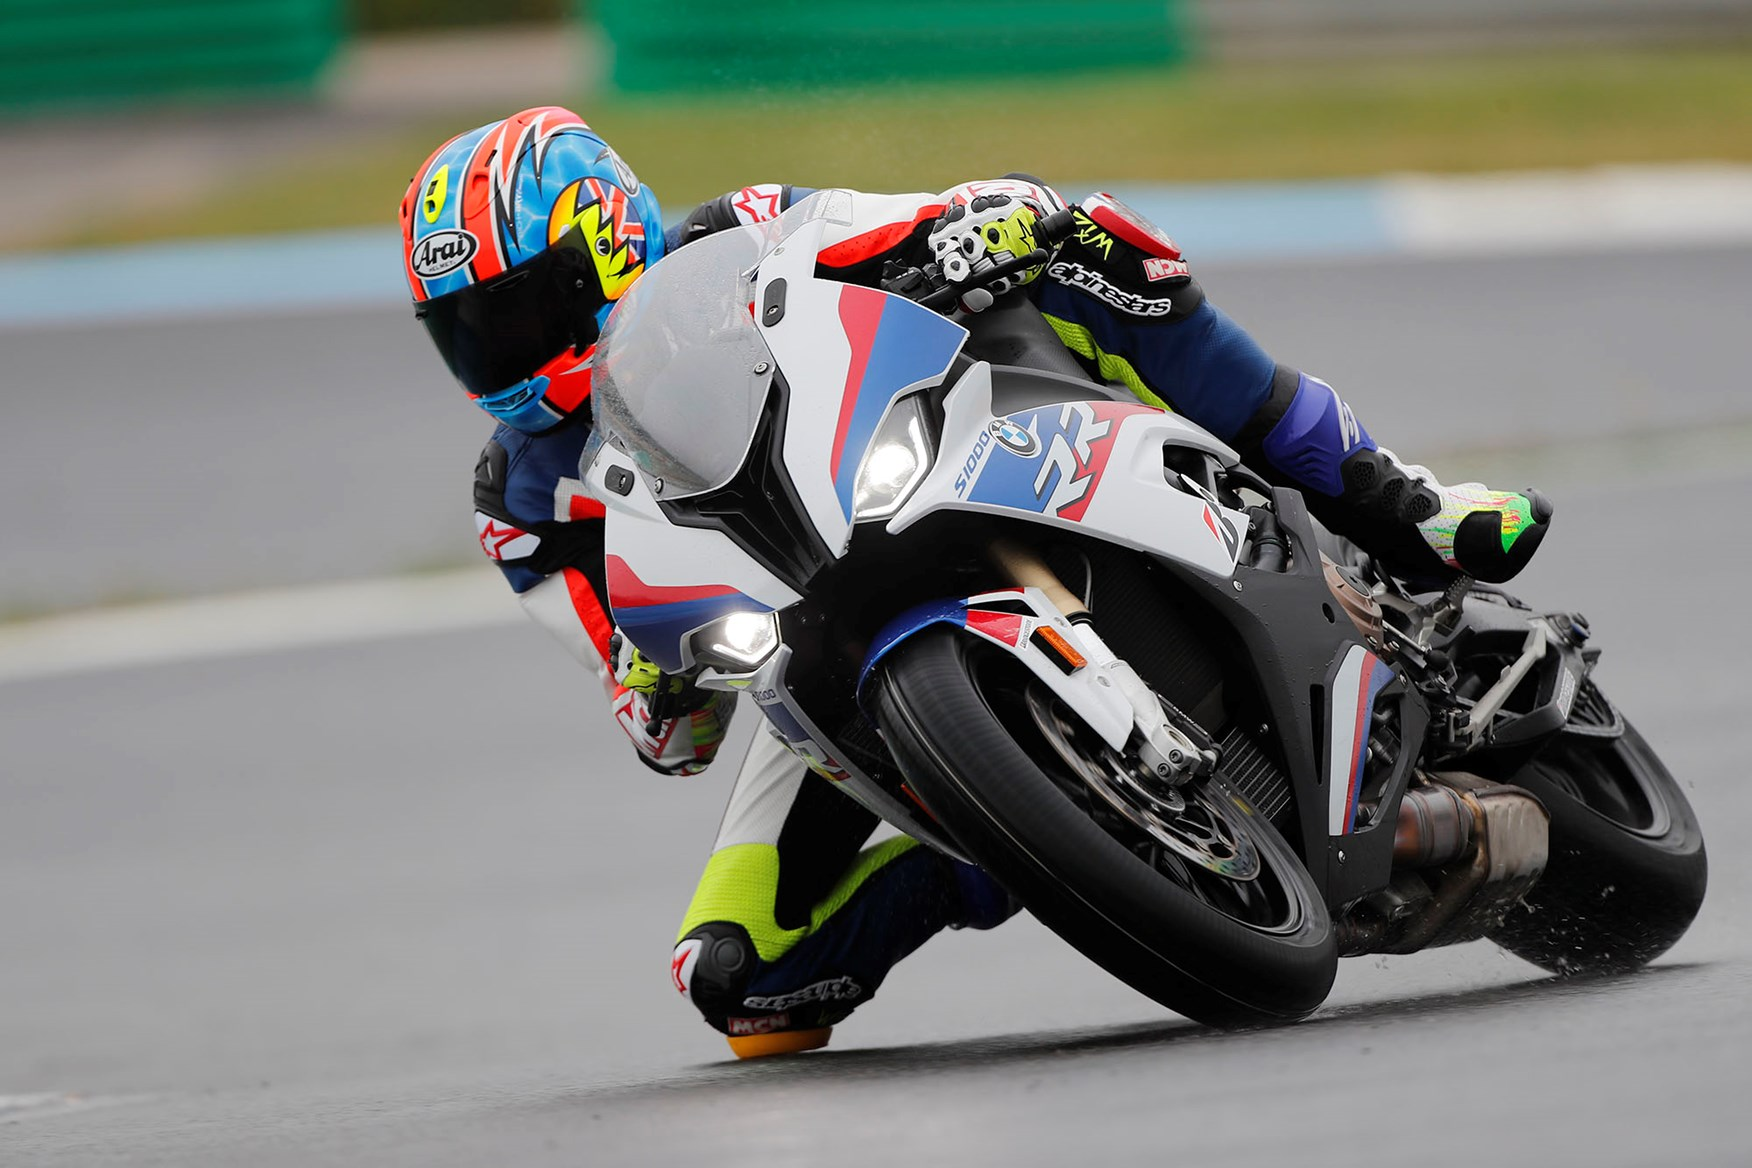 Bmw S1000rr 2019 On Review